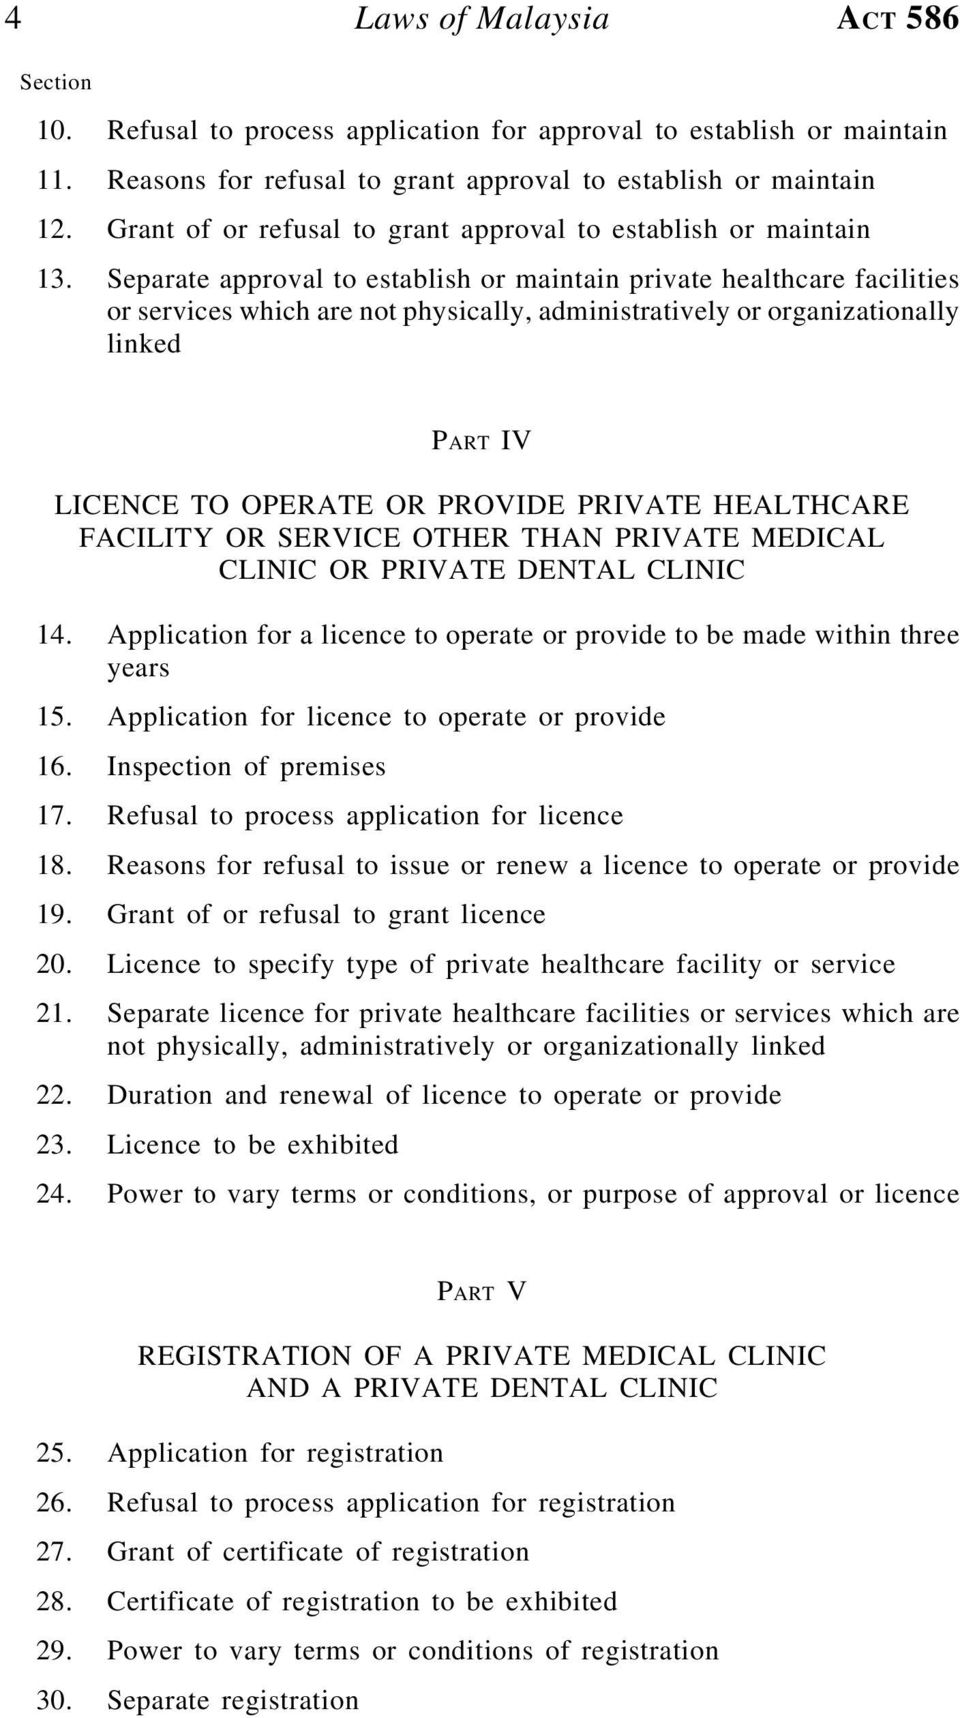 Separate approval to establish or maintain private healthcare facilities or services which are not physically, administratively or organizationally linked PART IV LICENCE TO OPERATE OR PROVIDE